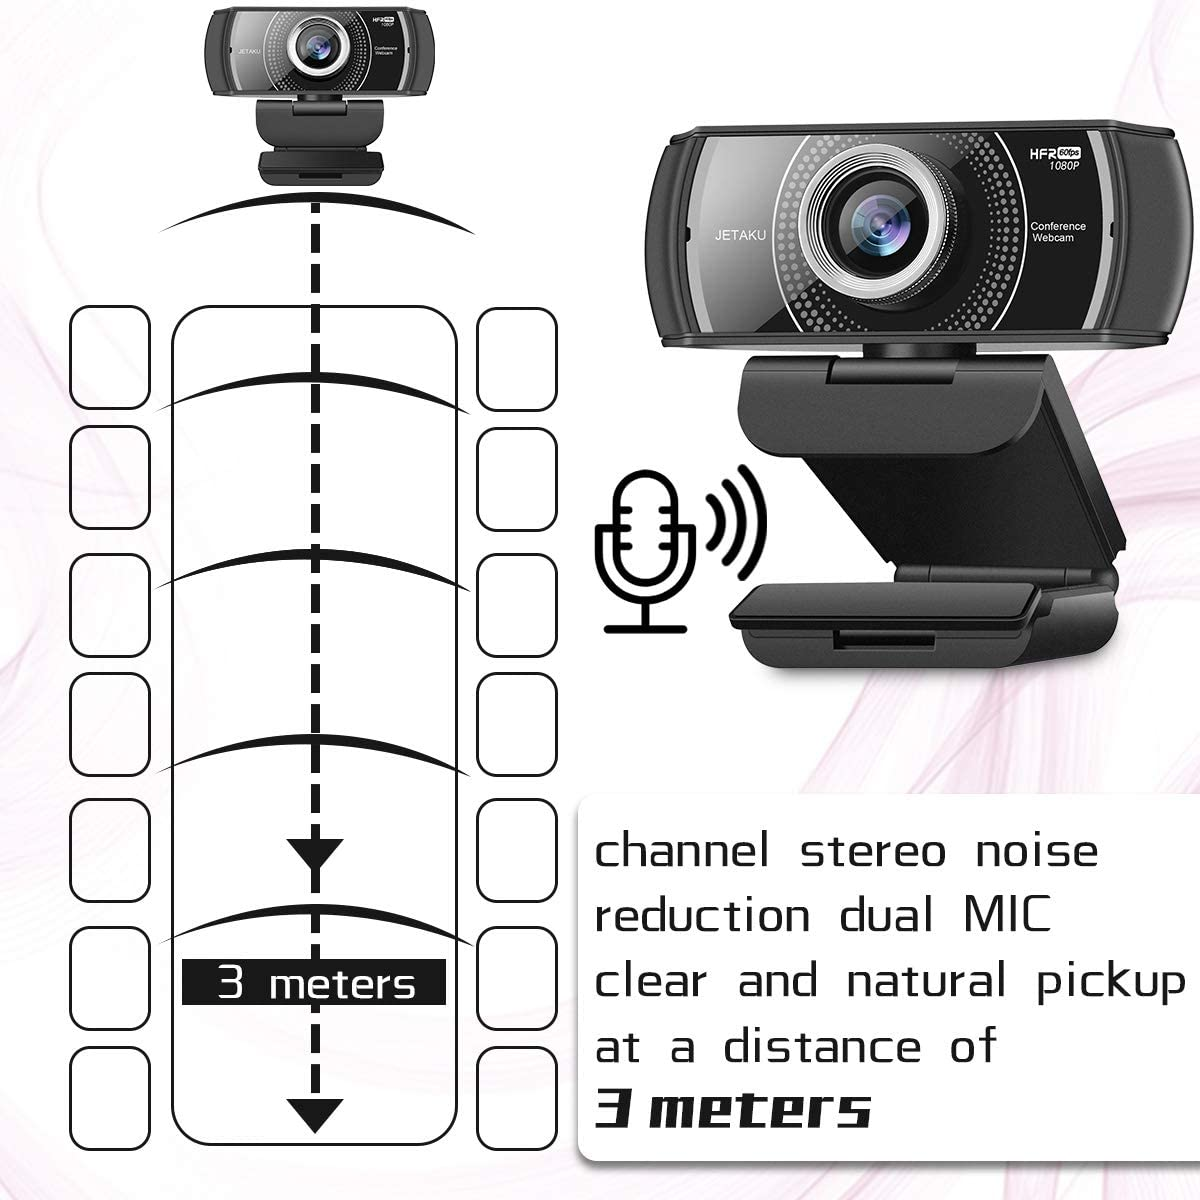 Webcam 1080P 60fps with Microphone for Streaming JETAKu 920Phro HD USB Computer Web Camera Video Cam for Gaming Conferencing Mac Windows Desktop PC Laptop